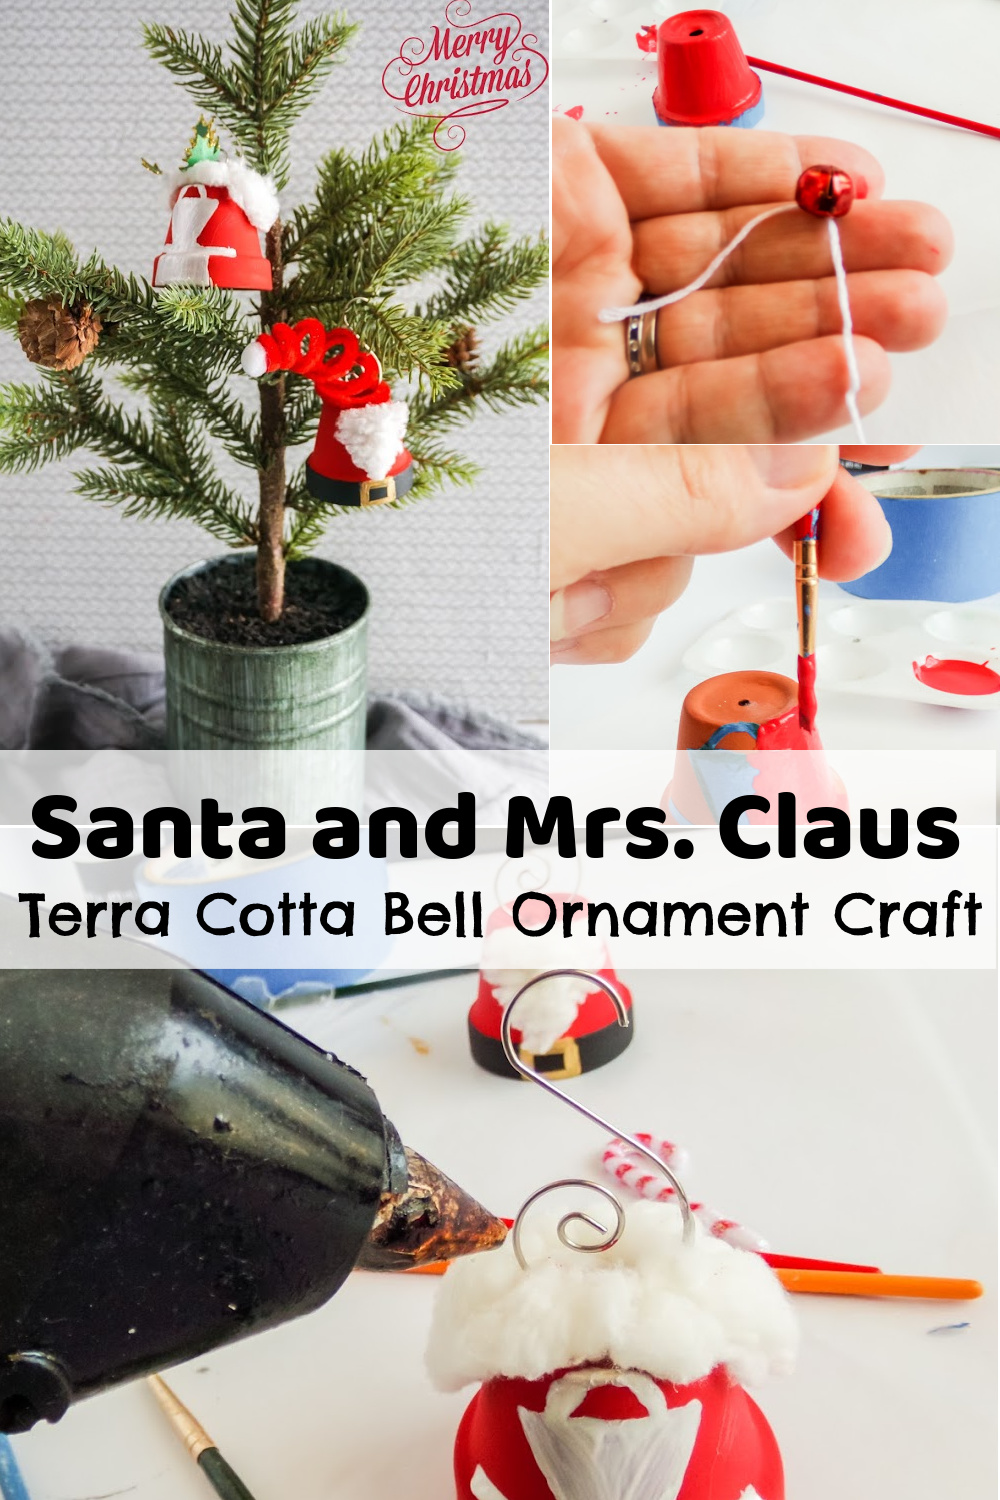 Terra Cotta Bell Ornament Craft